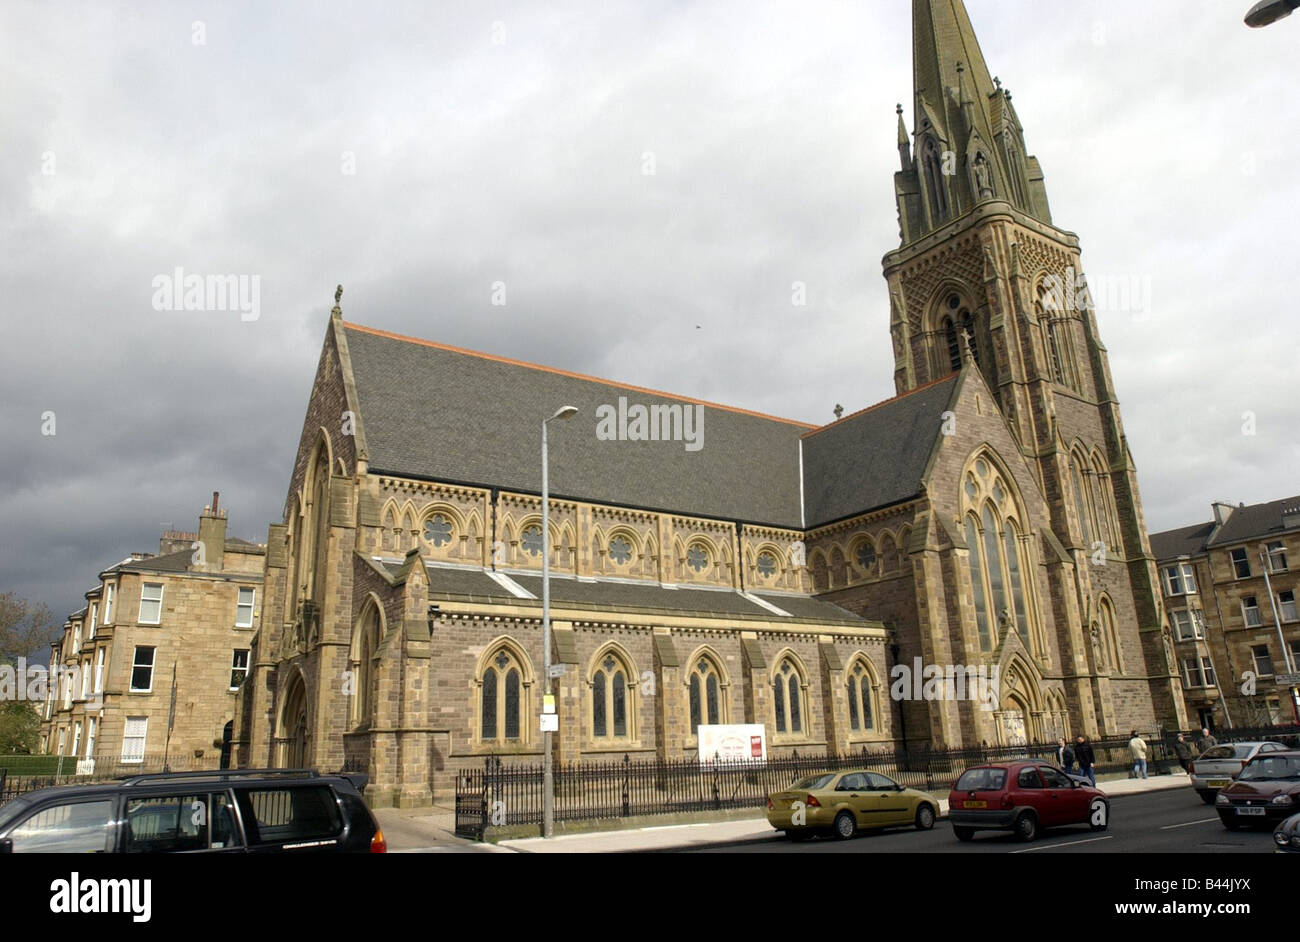 St Mary s Episcopal Church April 2004 in Great Western Rd Glasgow - Stock Image